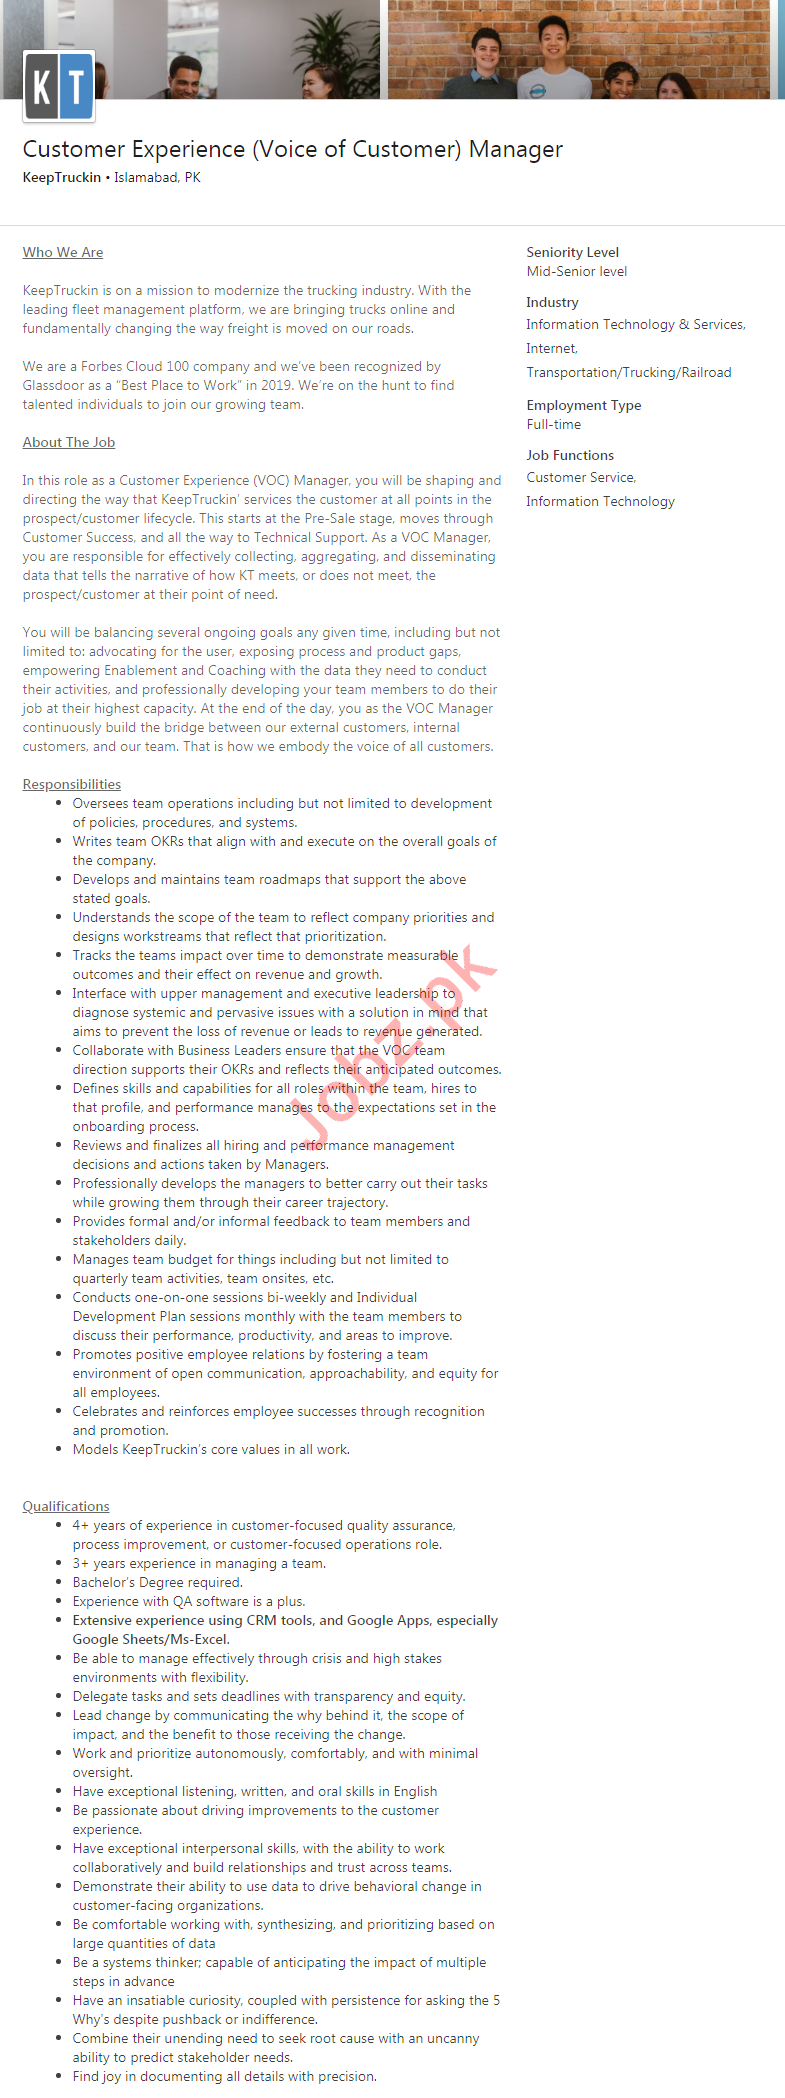 Customer Experience Manager Job 2020 in Islamabad